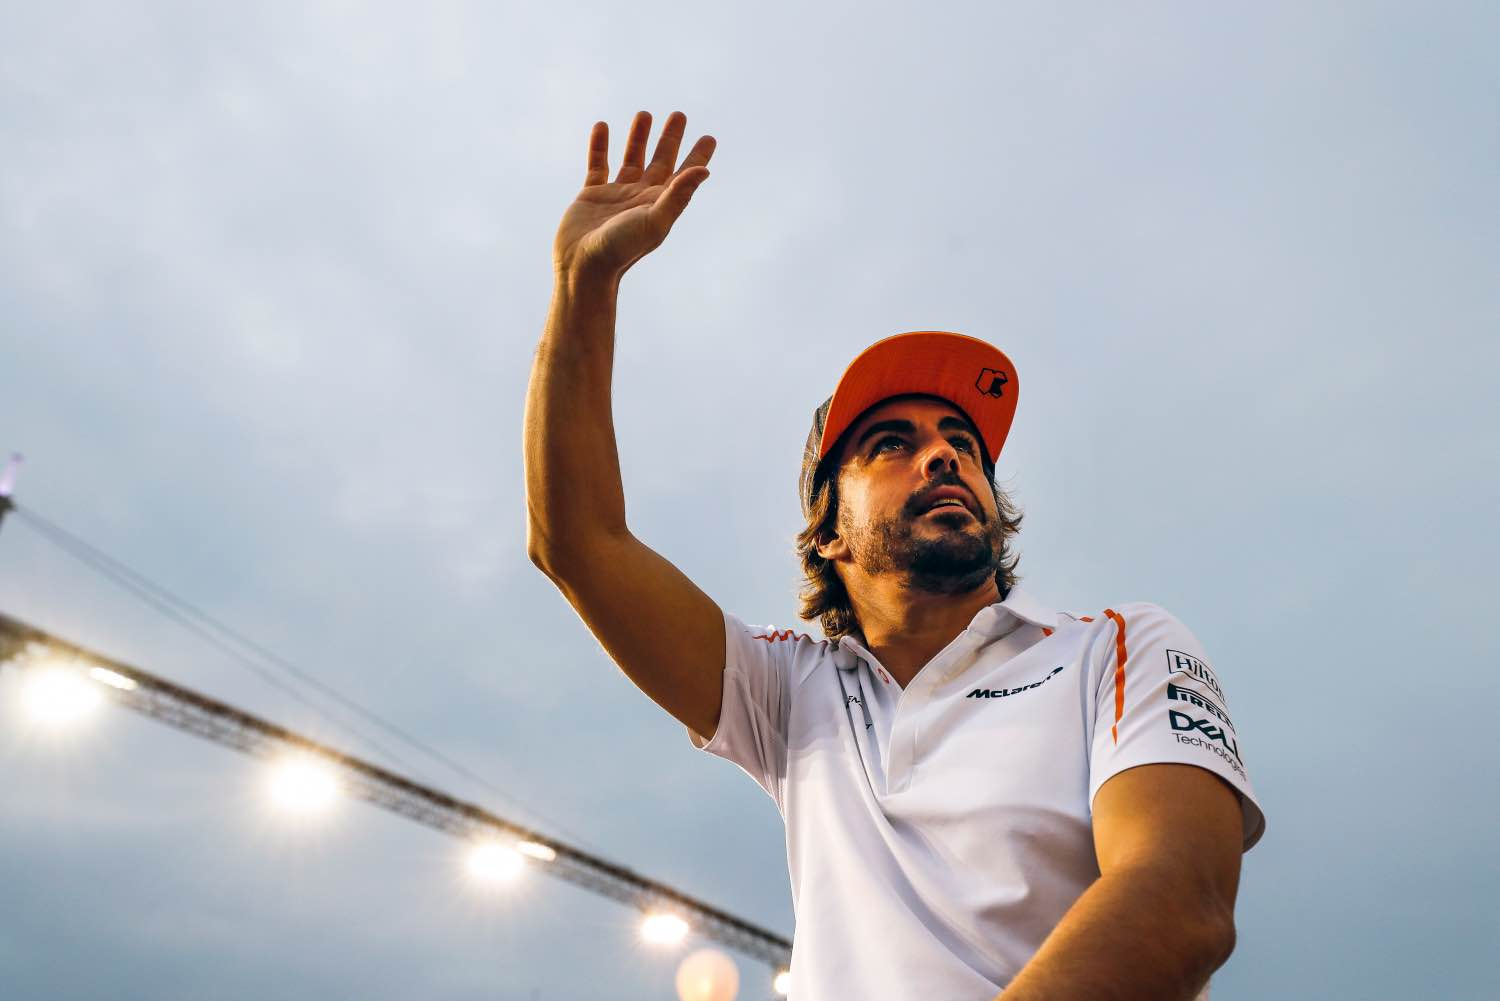 Marina Bay Circuit, Singapore Sunday 16 September 2018. Fernando Alonso, McLaren, in the drivers parade. Photo: Steven Tee/McLaren ref: Digital Image _2ST1470